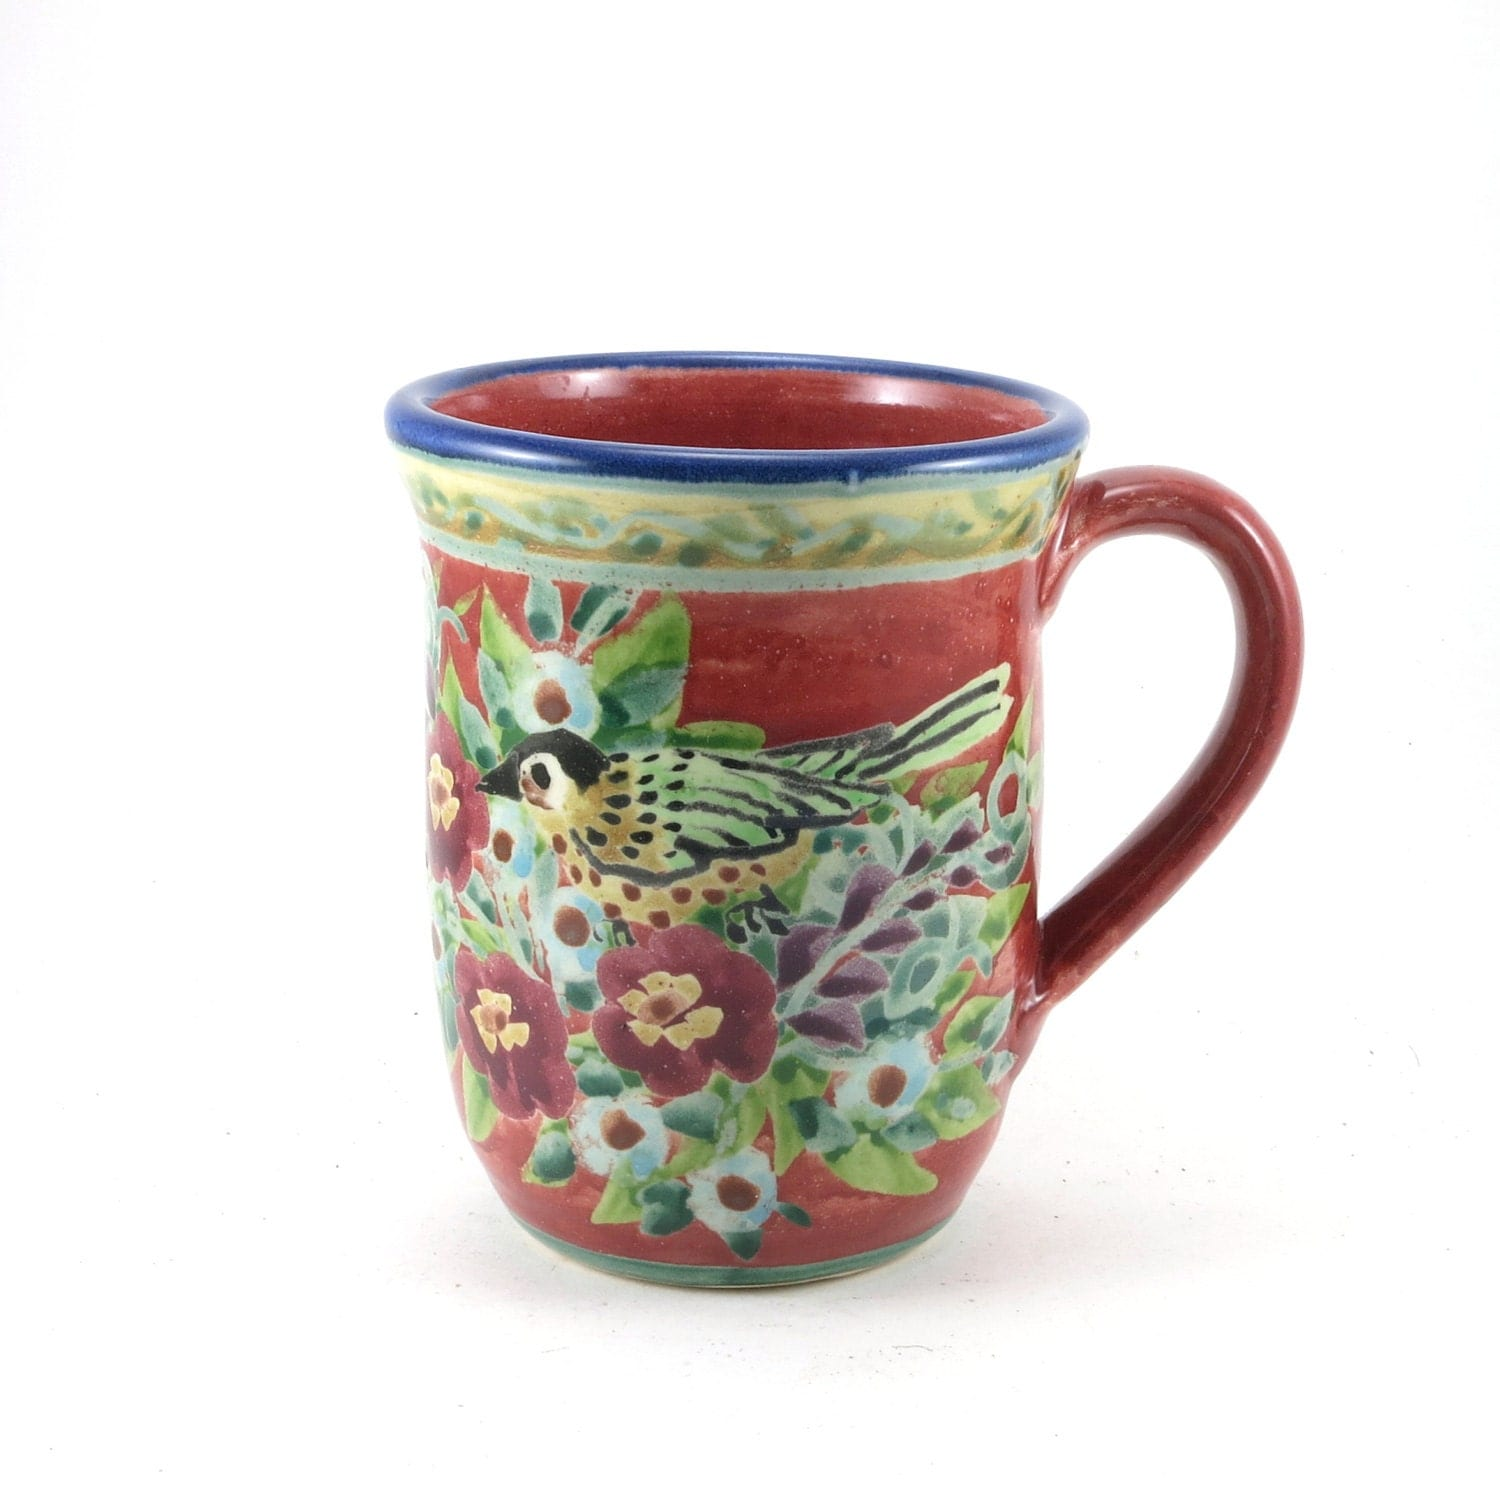 Unique Coffee Mug Red Porcelain Tea Cup Perfect For Floral